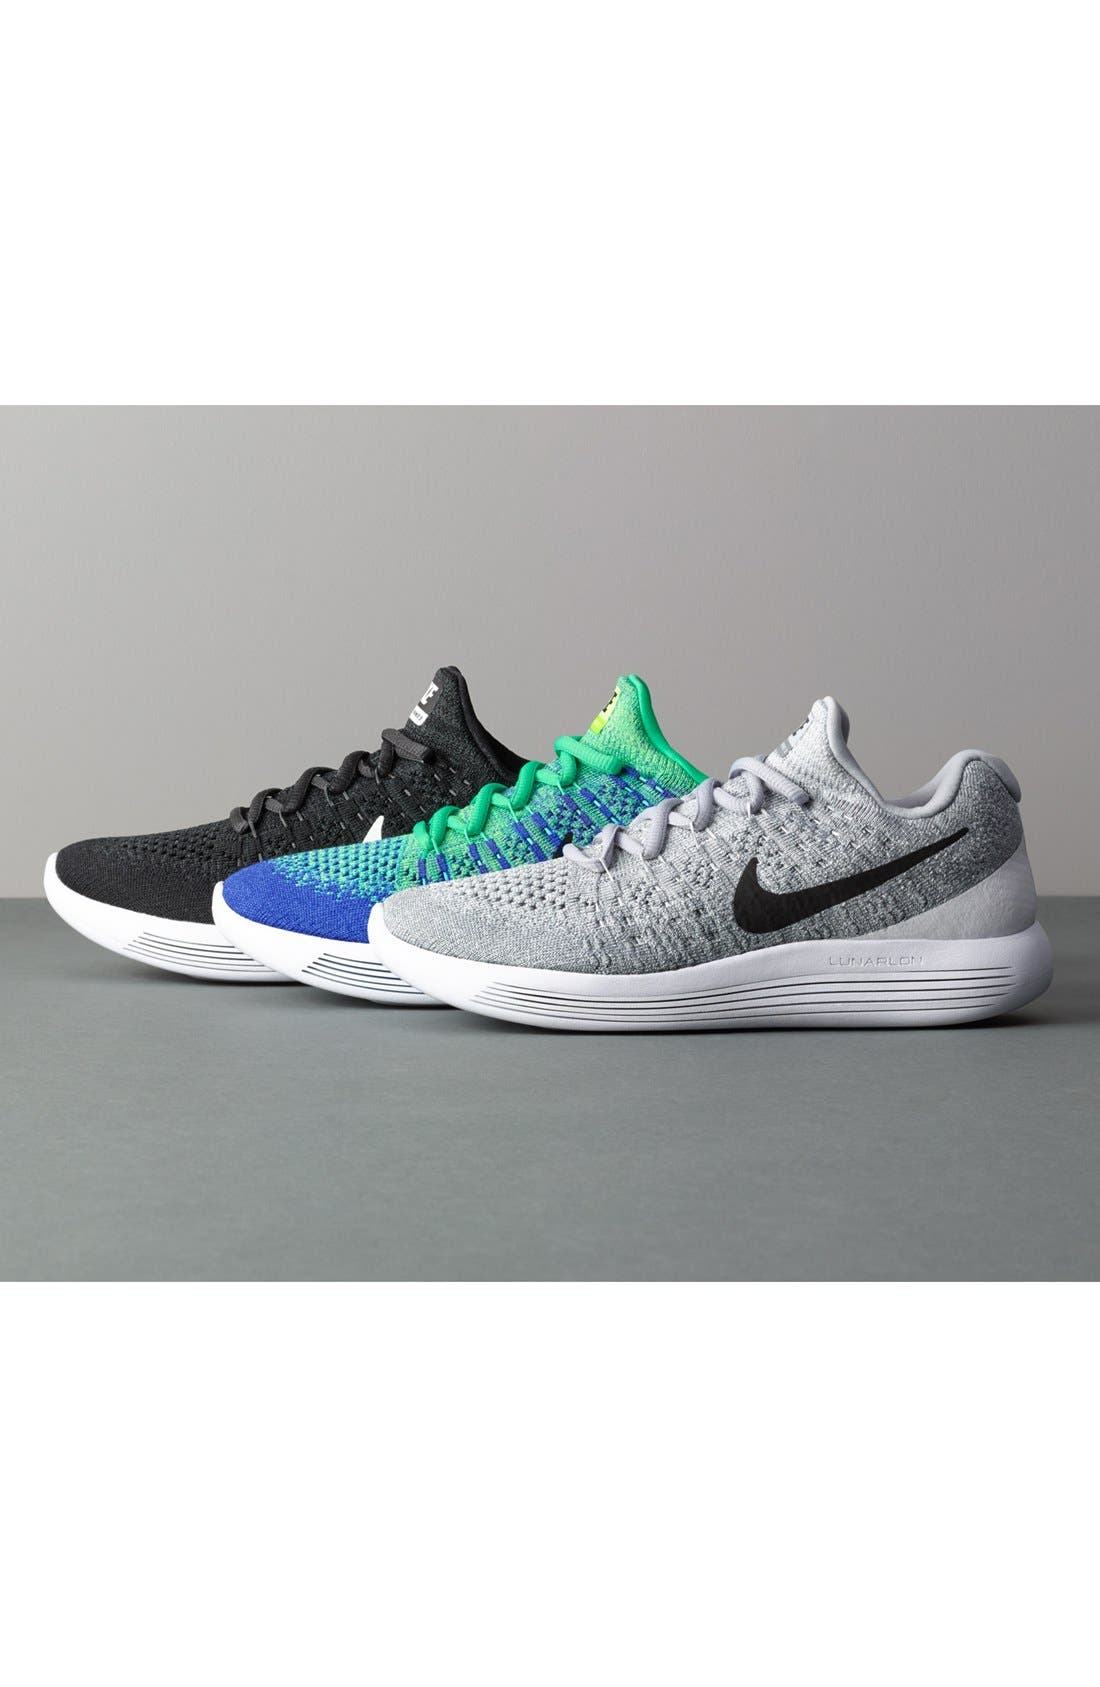 Flyknit 2 LunarEpic Running Shoe,                             Alternate thumbnail 5, color,                             001